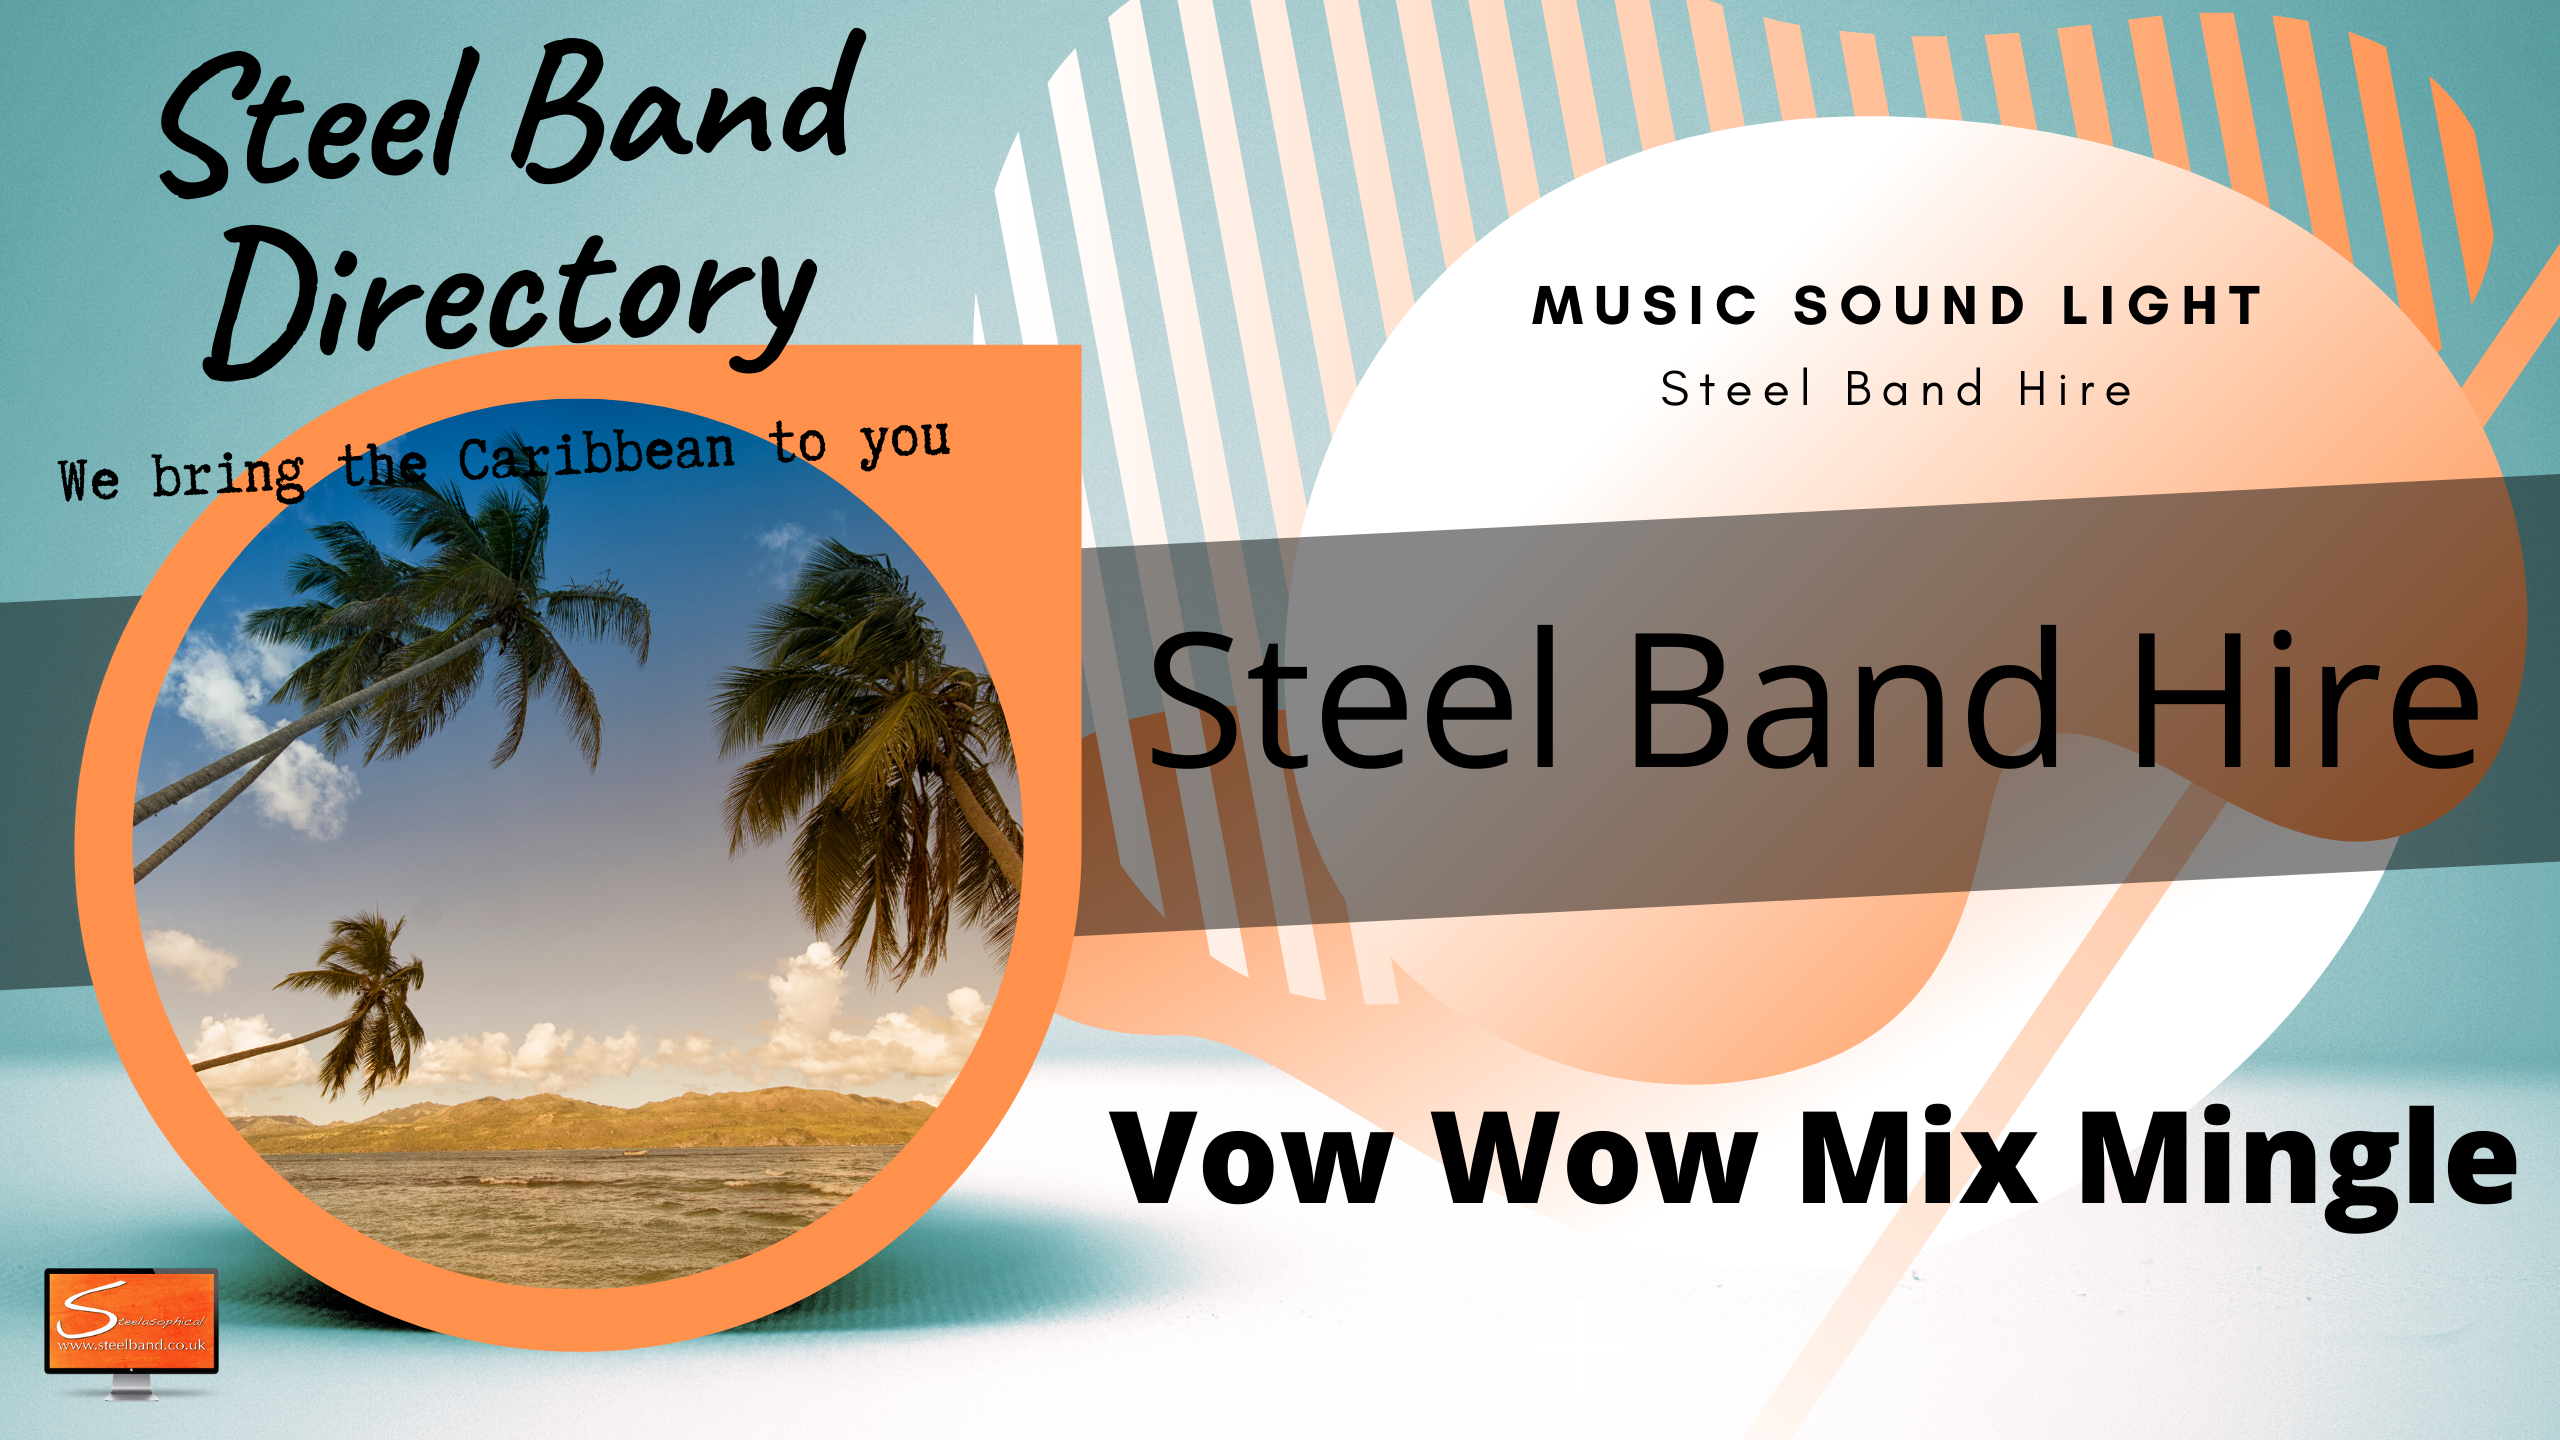 Caribbean Island steel bands for hire uk steelband for hire